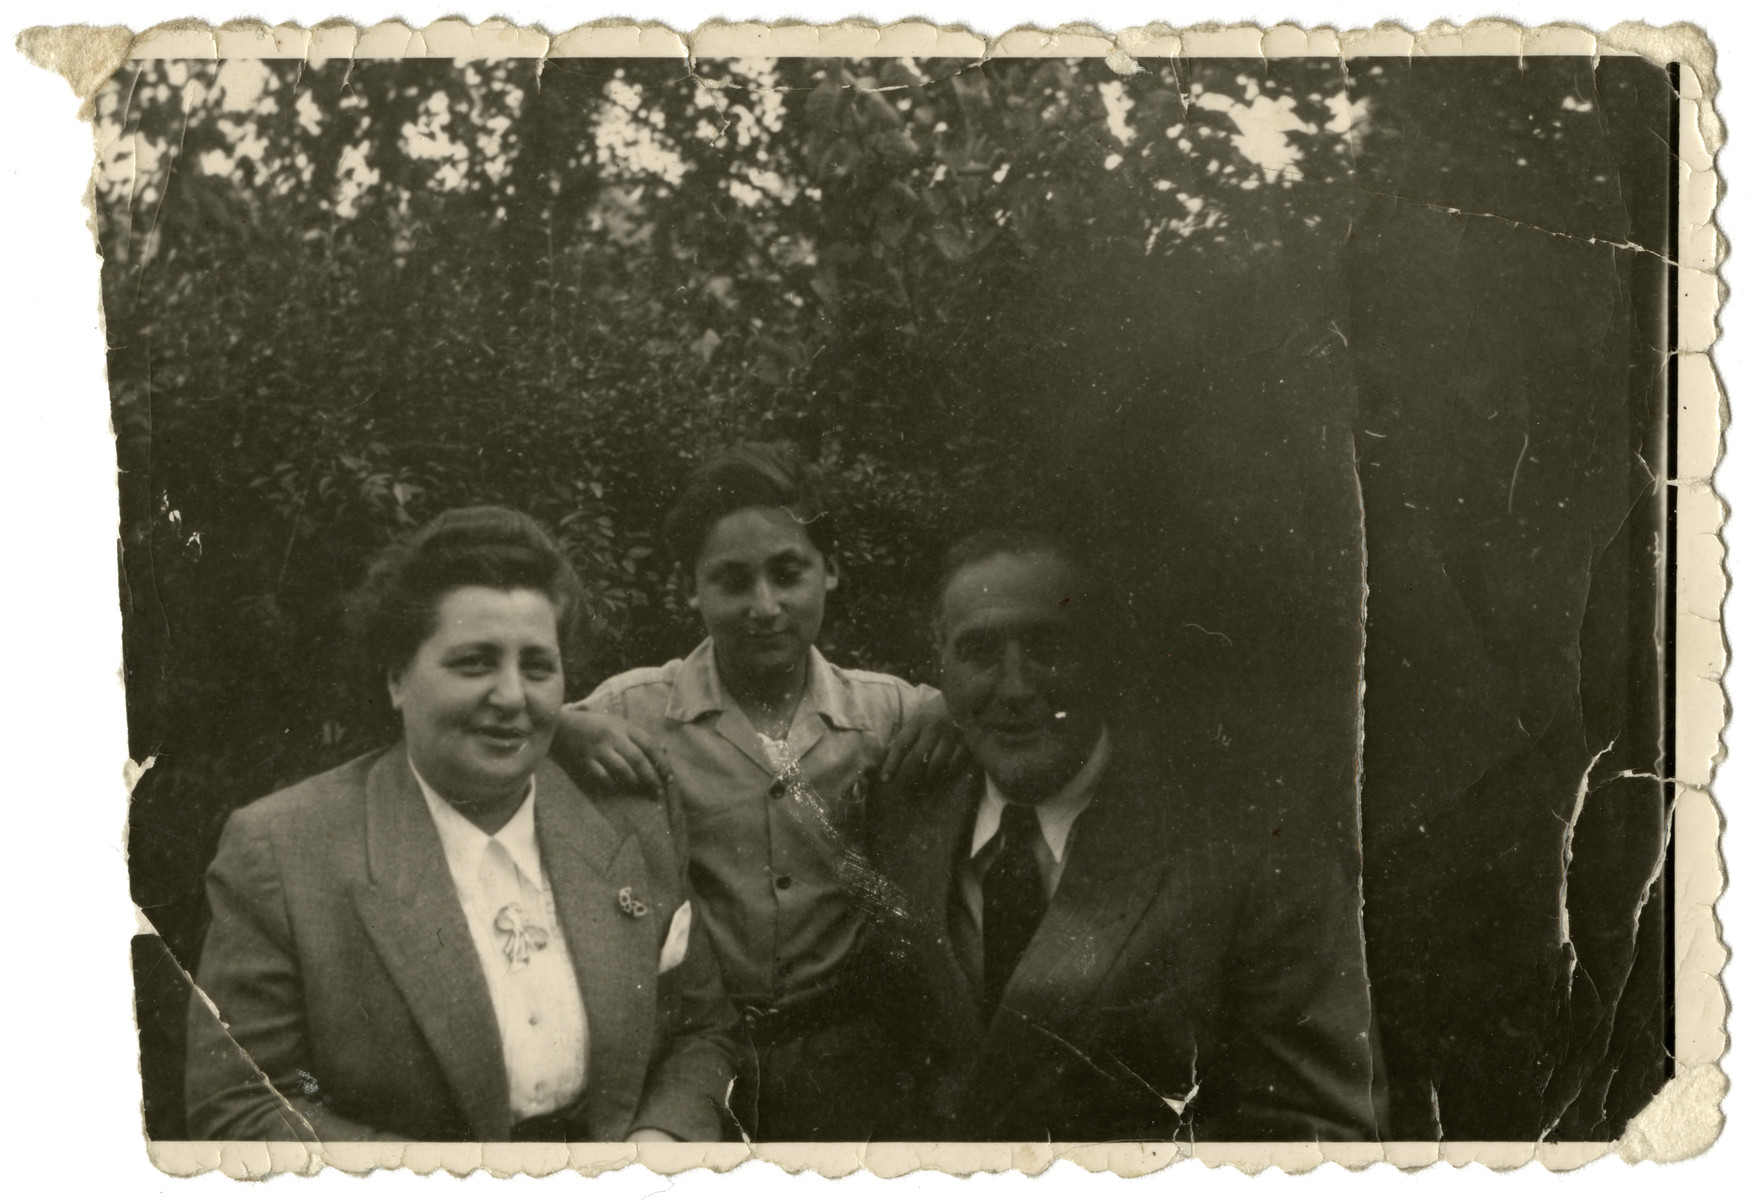 Simon Steil poses with the Mr. and Mrs. Finel, cousins of his mother who had escaped to Switzerland and spent the war there.